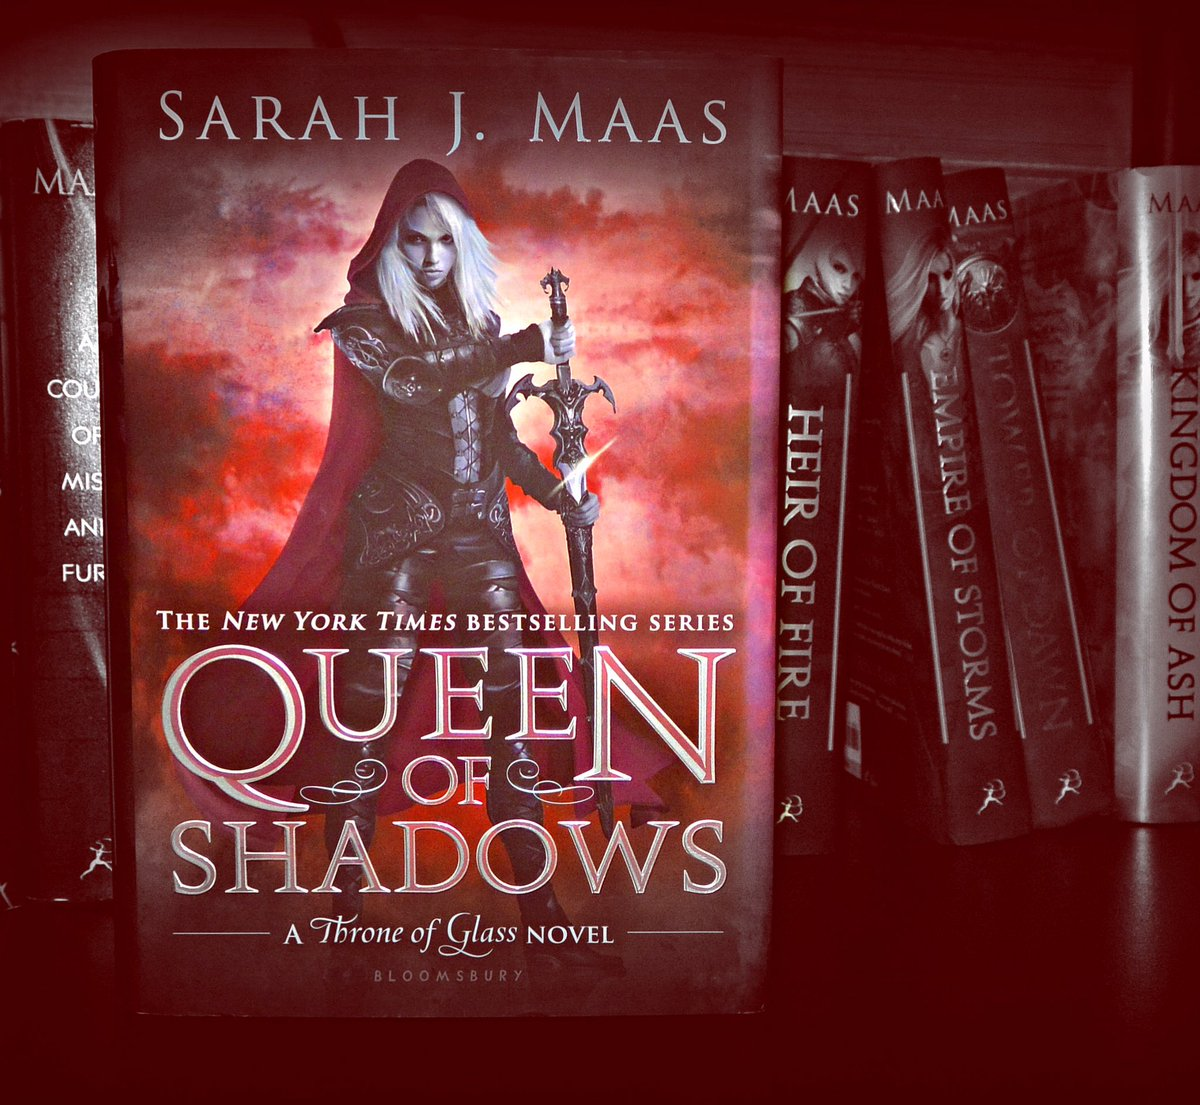 Can we just talk about #throneofglass for a second. #queenofshadows was an emotional roller coaster that I wanna keep riding, but I don't at the same time. #ouch #readingproblems<br>http://pic.twitter.com/yD7nElEEdo